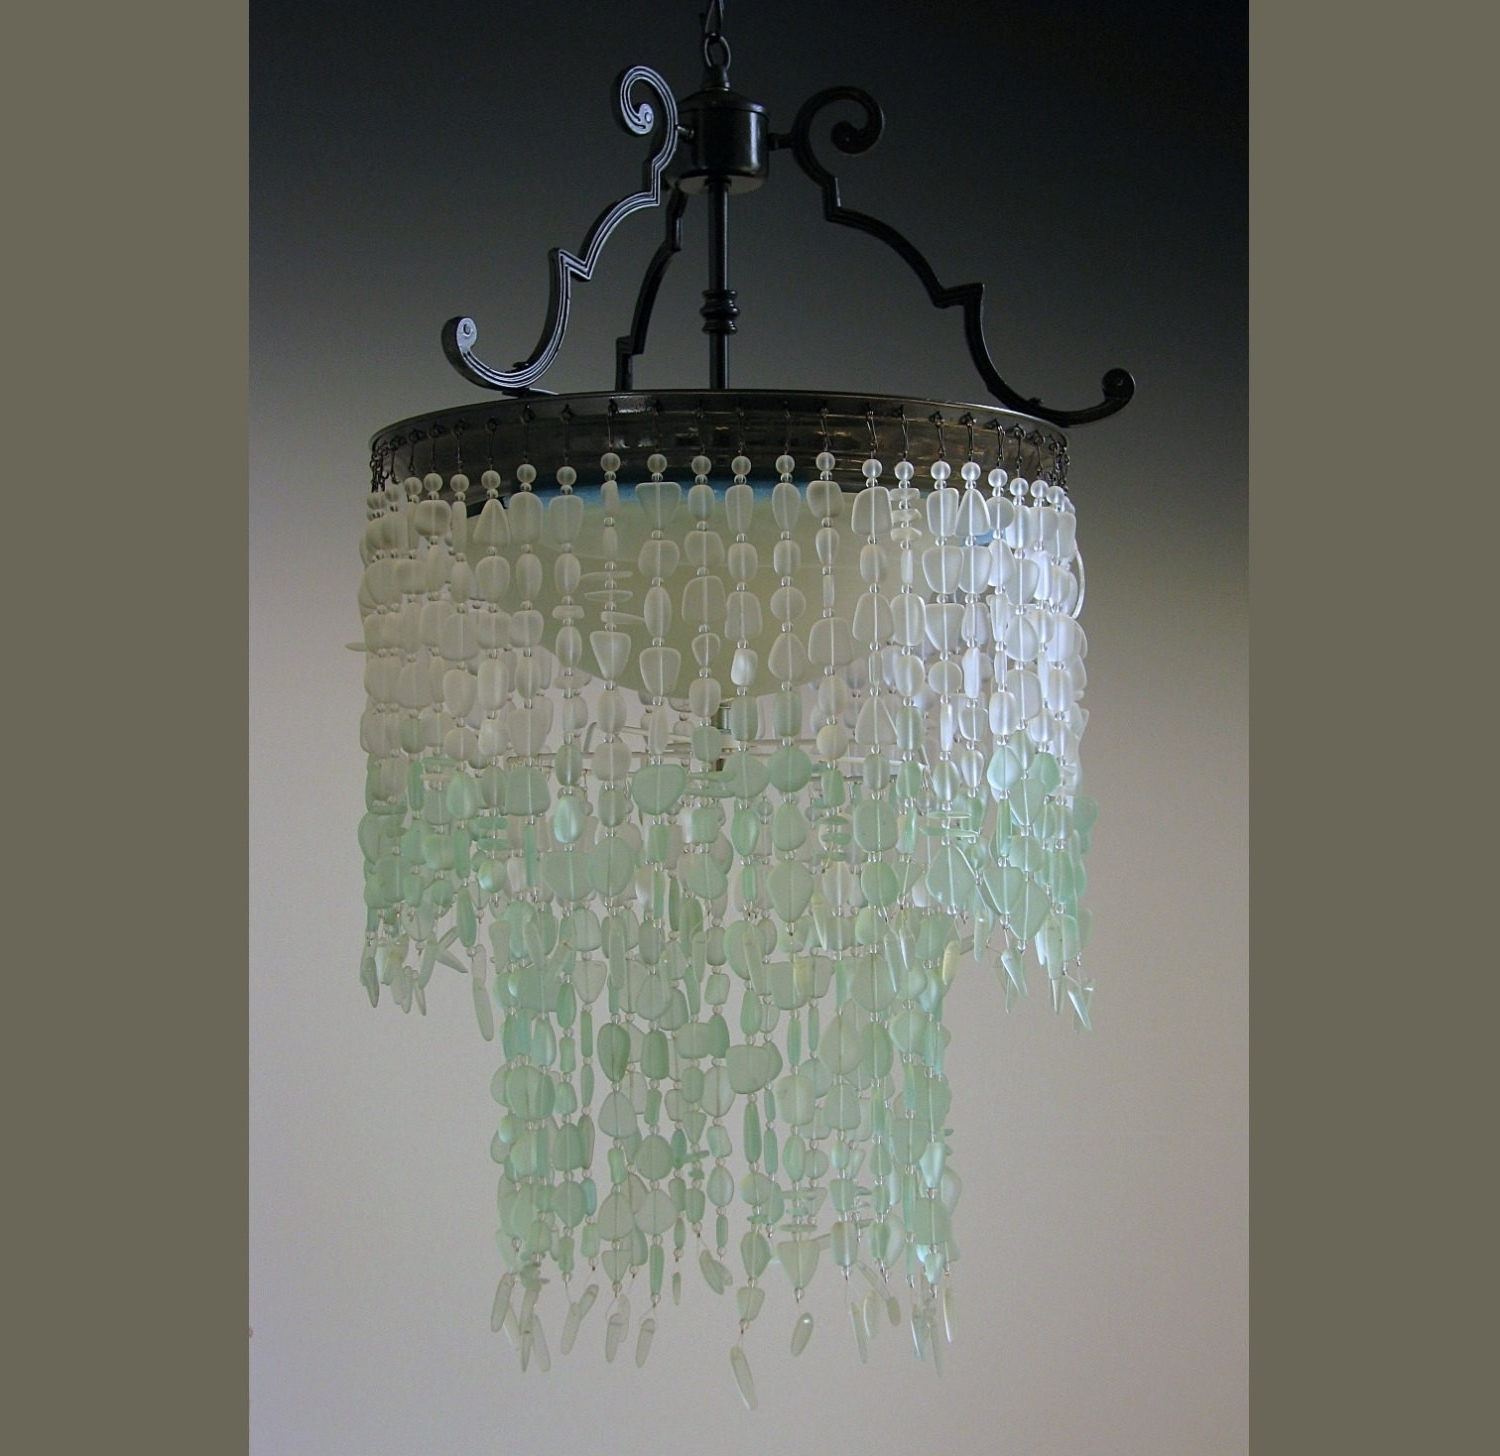 Turquoise Blue Glass Chandeliers In Popular Chandeliers : Sea Glass Chandelier Awesome Chandelier Turquoise Blue (View 11 of 15)